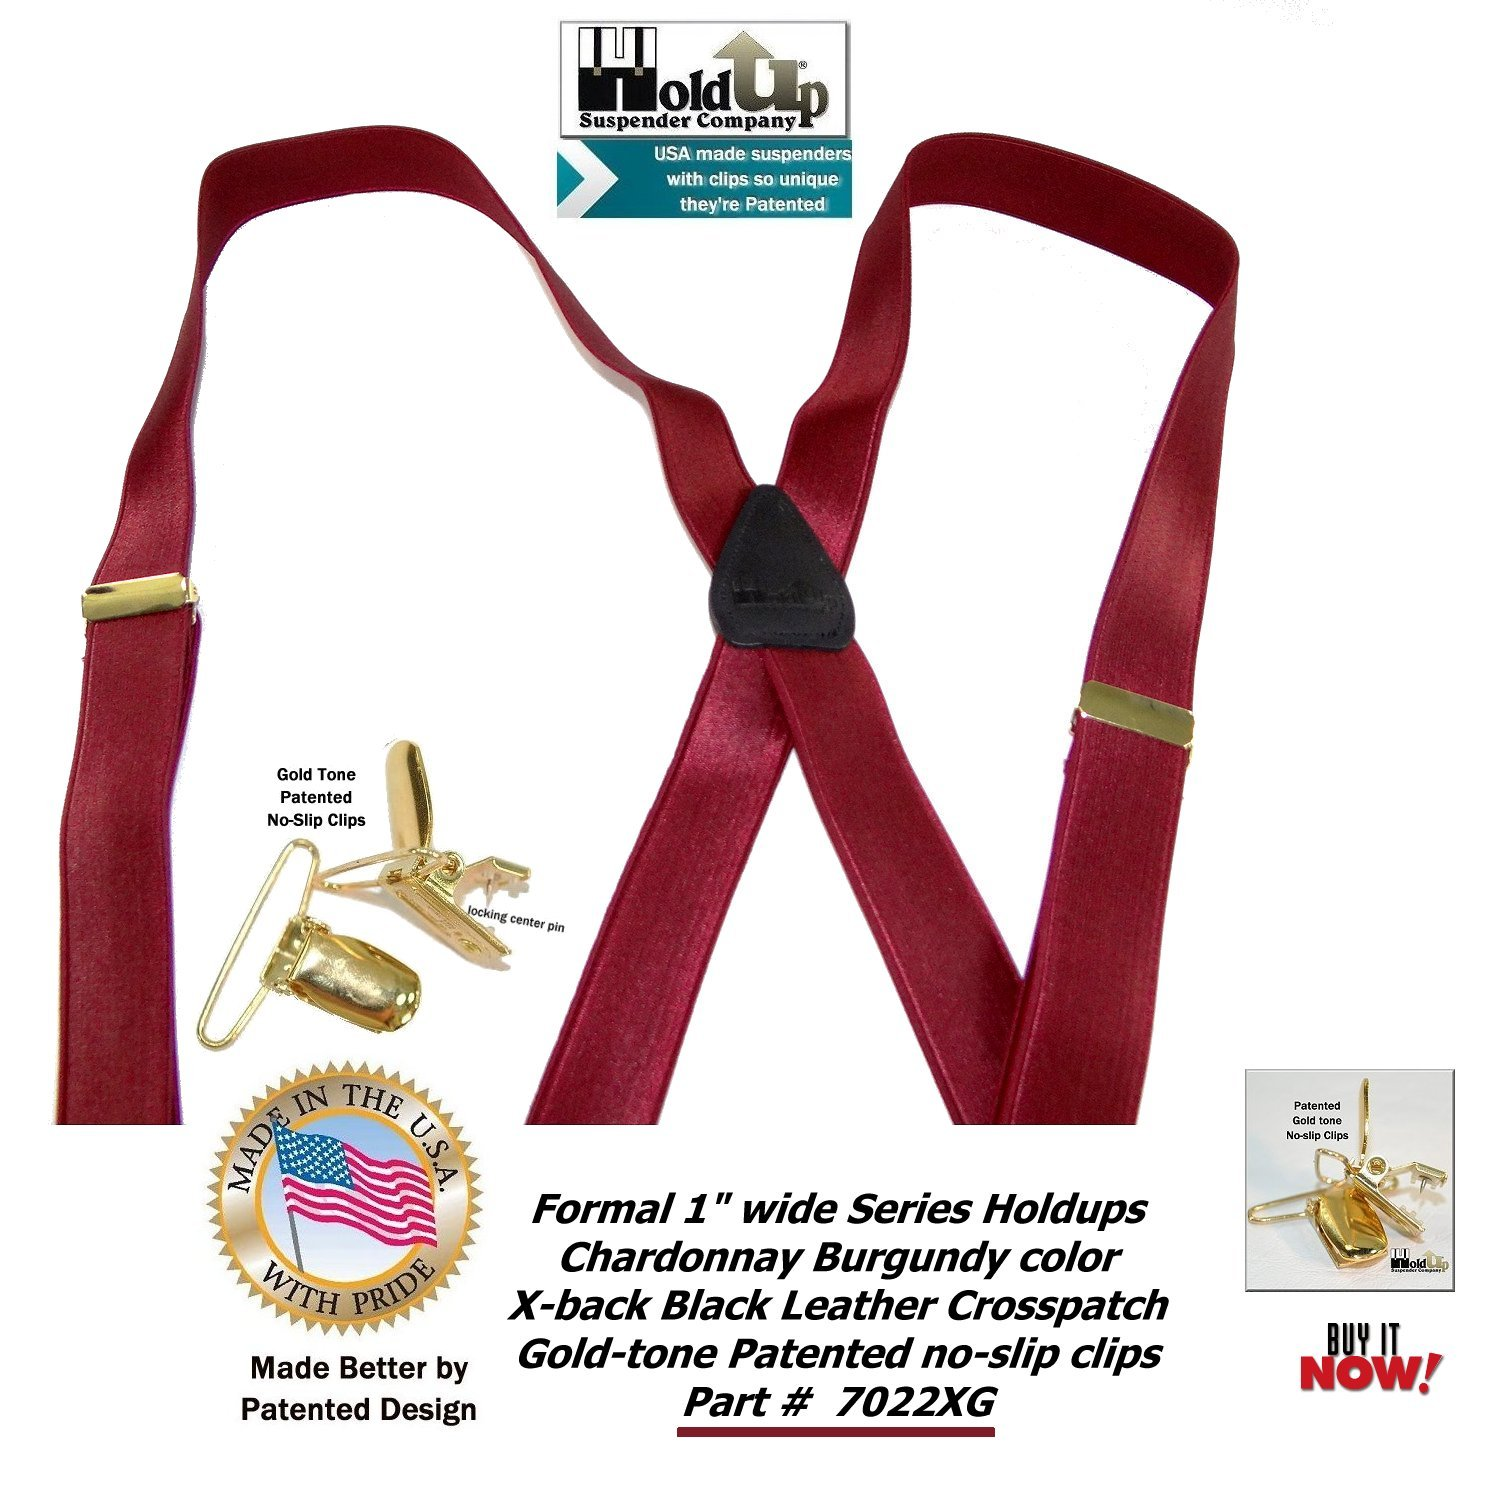 b3375a0510c Holdup Suspender Company s X-back Formal Chardonnay Burgundy Men s  Suspenders with Patented Gold-tone Clips at Amazon Men s Clothing store